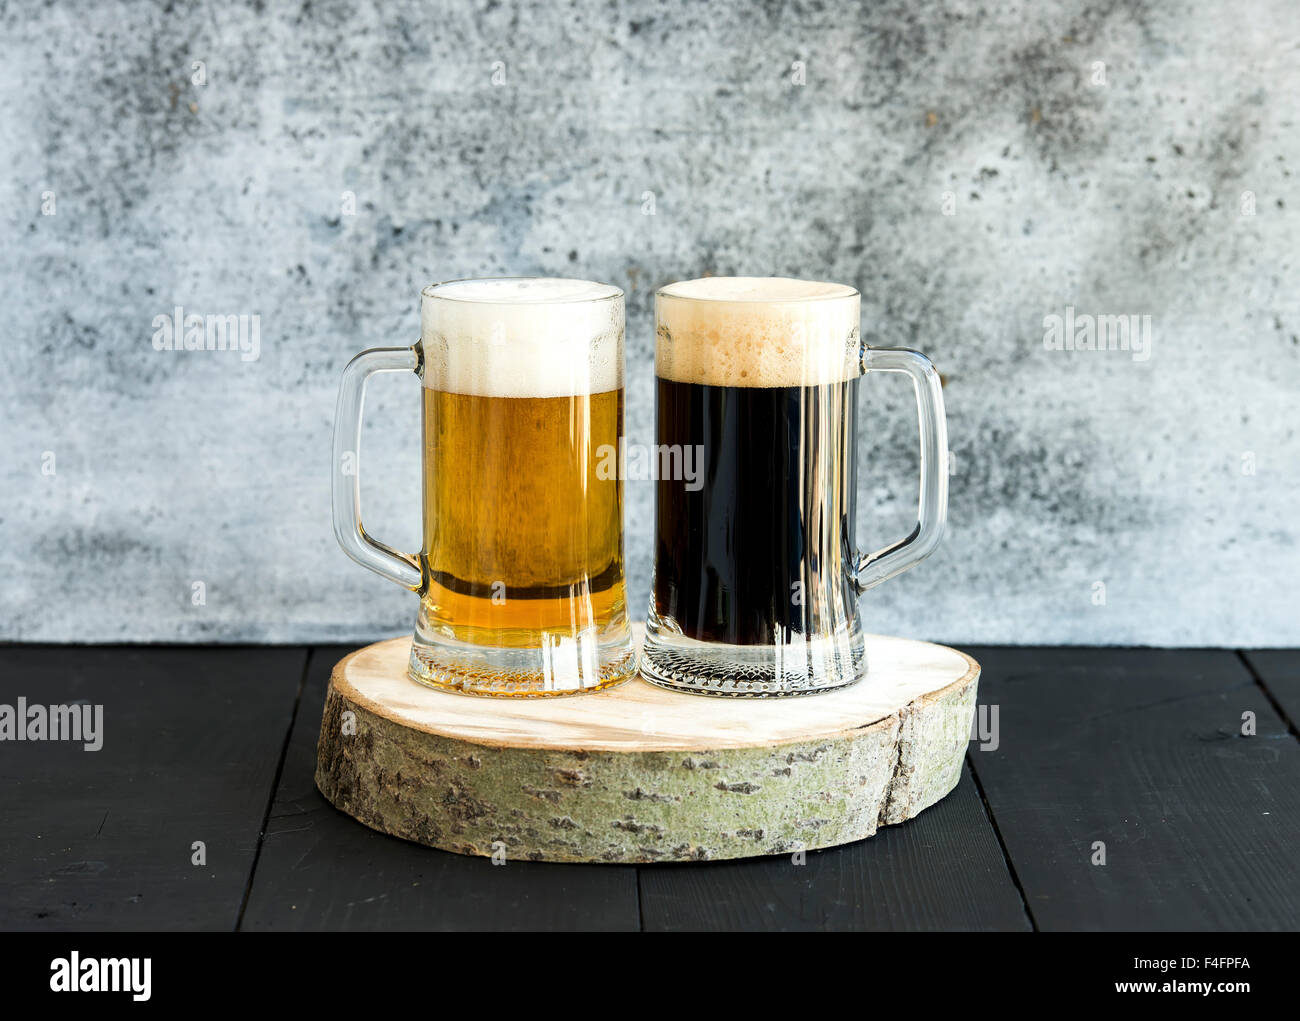 Light and dark beer in mugs on wooden board, grunge backdrop - Stock Image